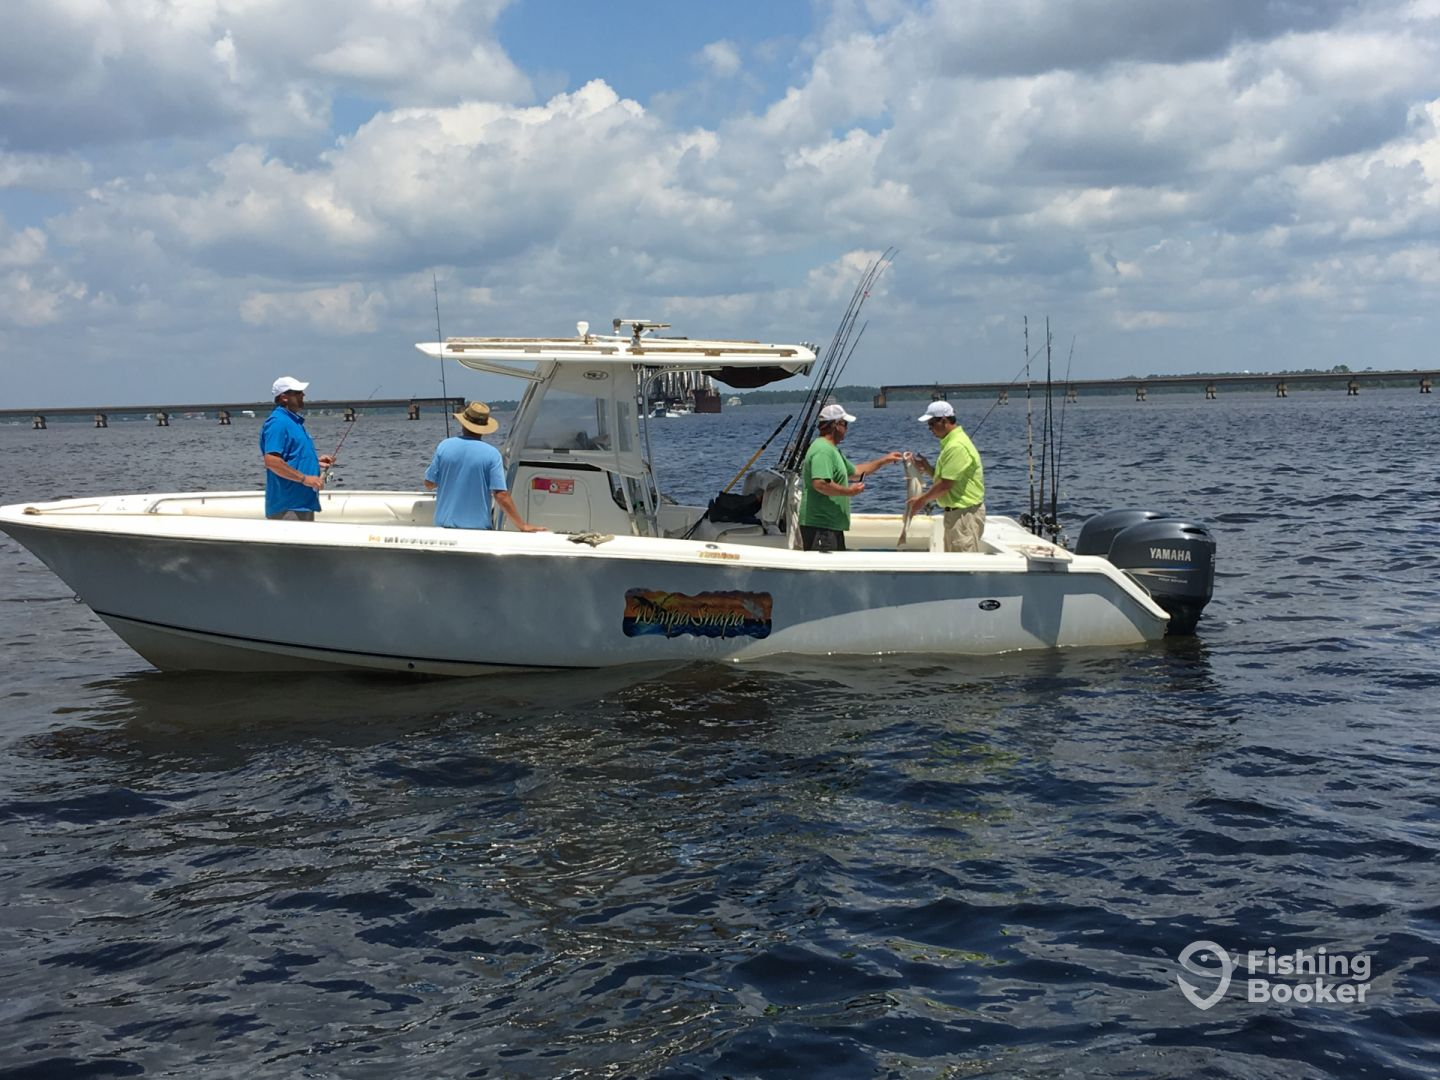 Whipasnapa charters biloxi ms d 39 iberville ms for Fishing in biloxi ms